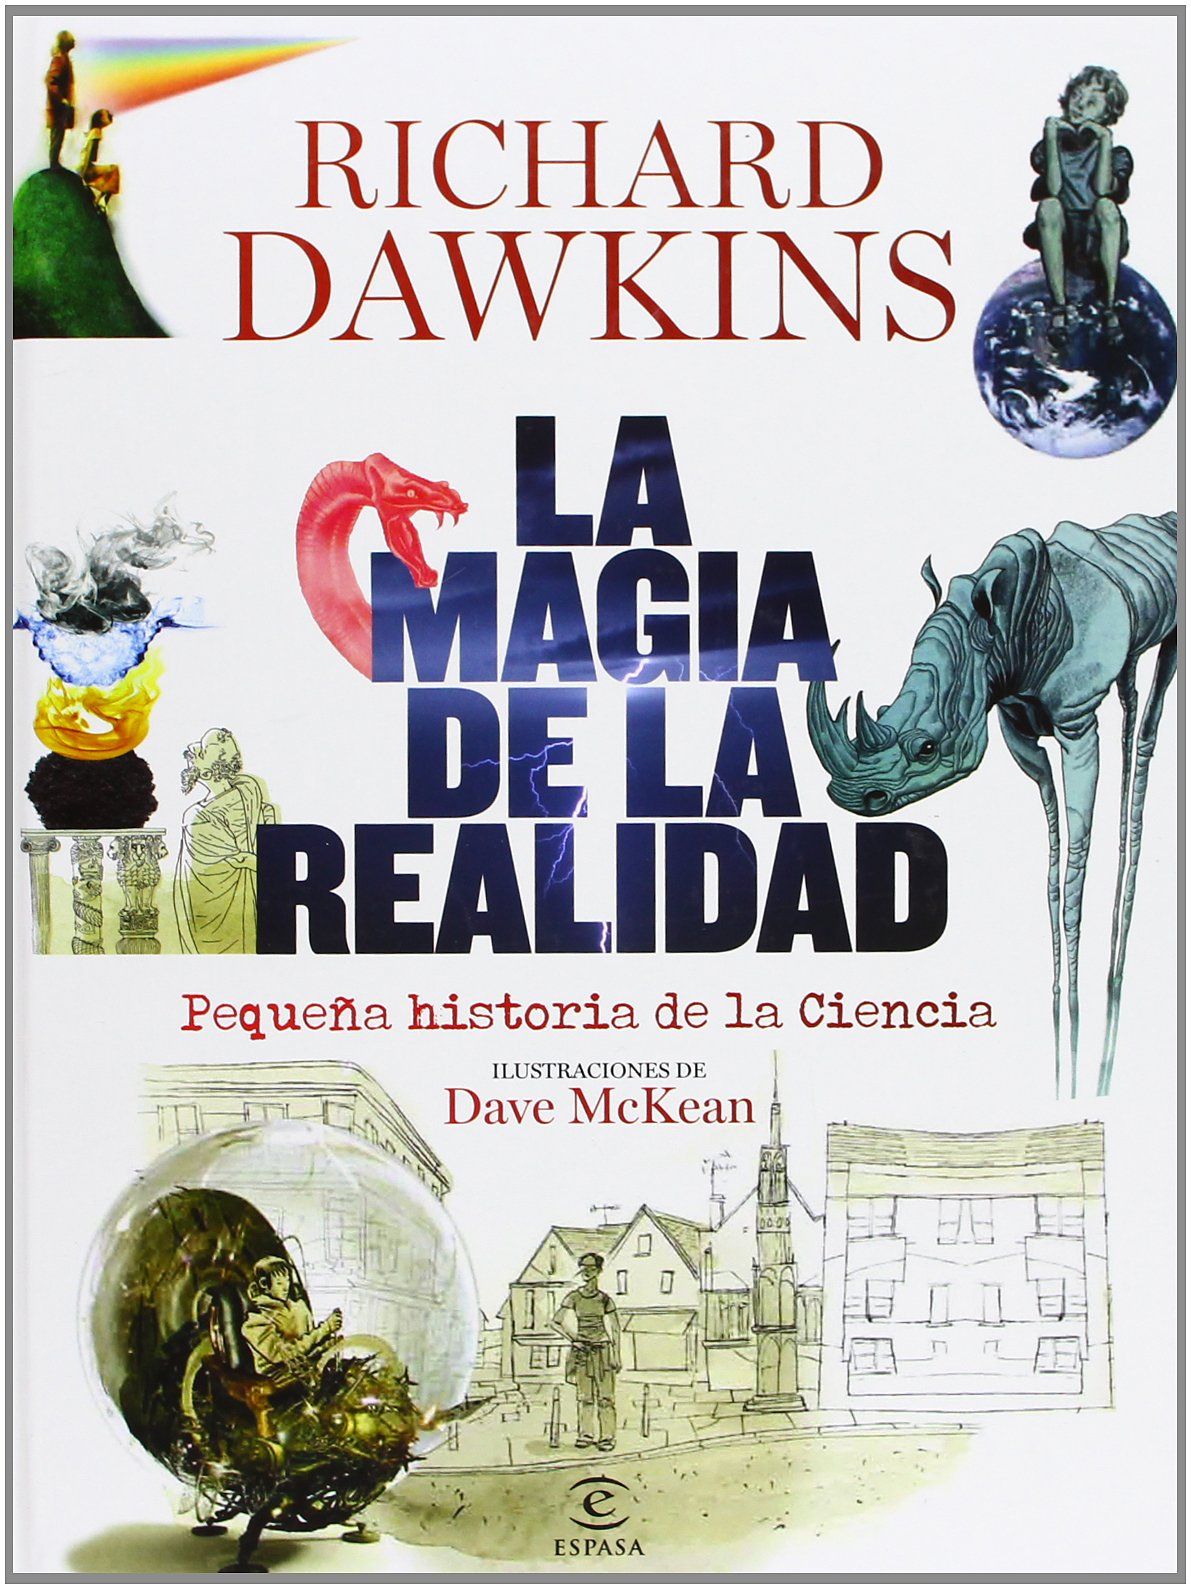 La magia de la realidad (Spanish) Hardcover – January 1, 1900